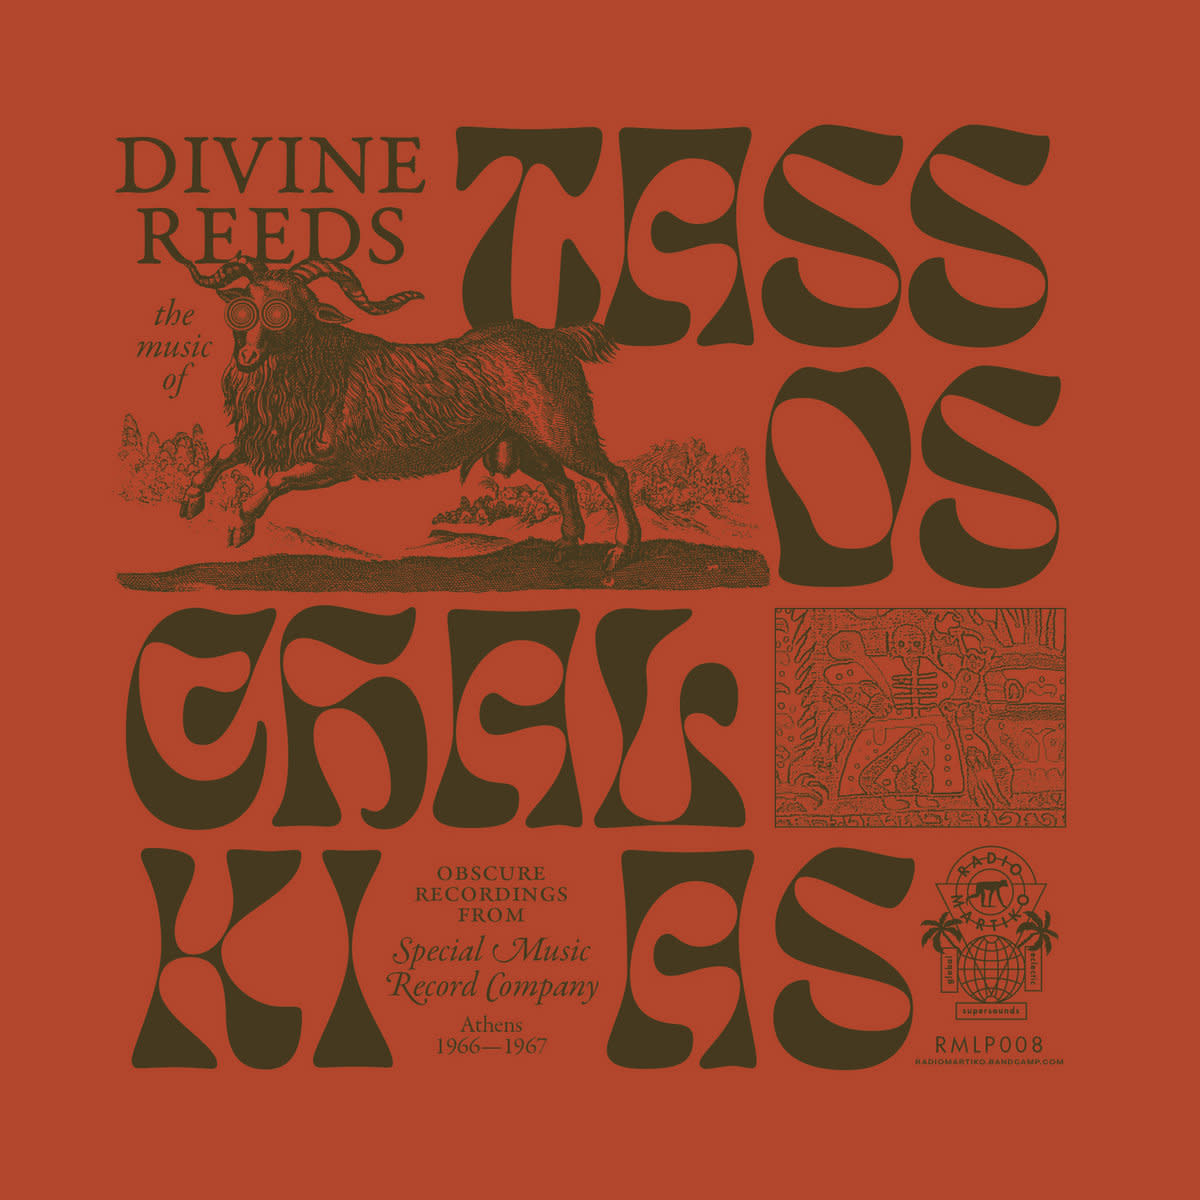 Radio Martiko Tassos Chalkias - Divine Reeds: Obscure Recordings From Special Music Record Company (Athens 1966-1967)